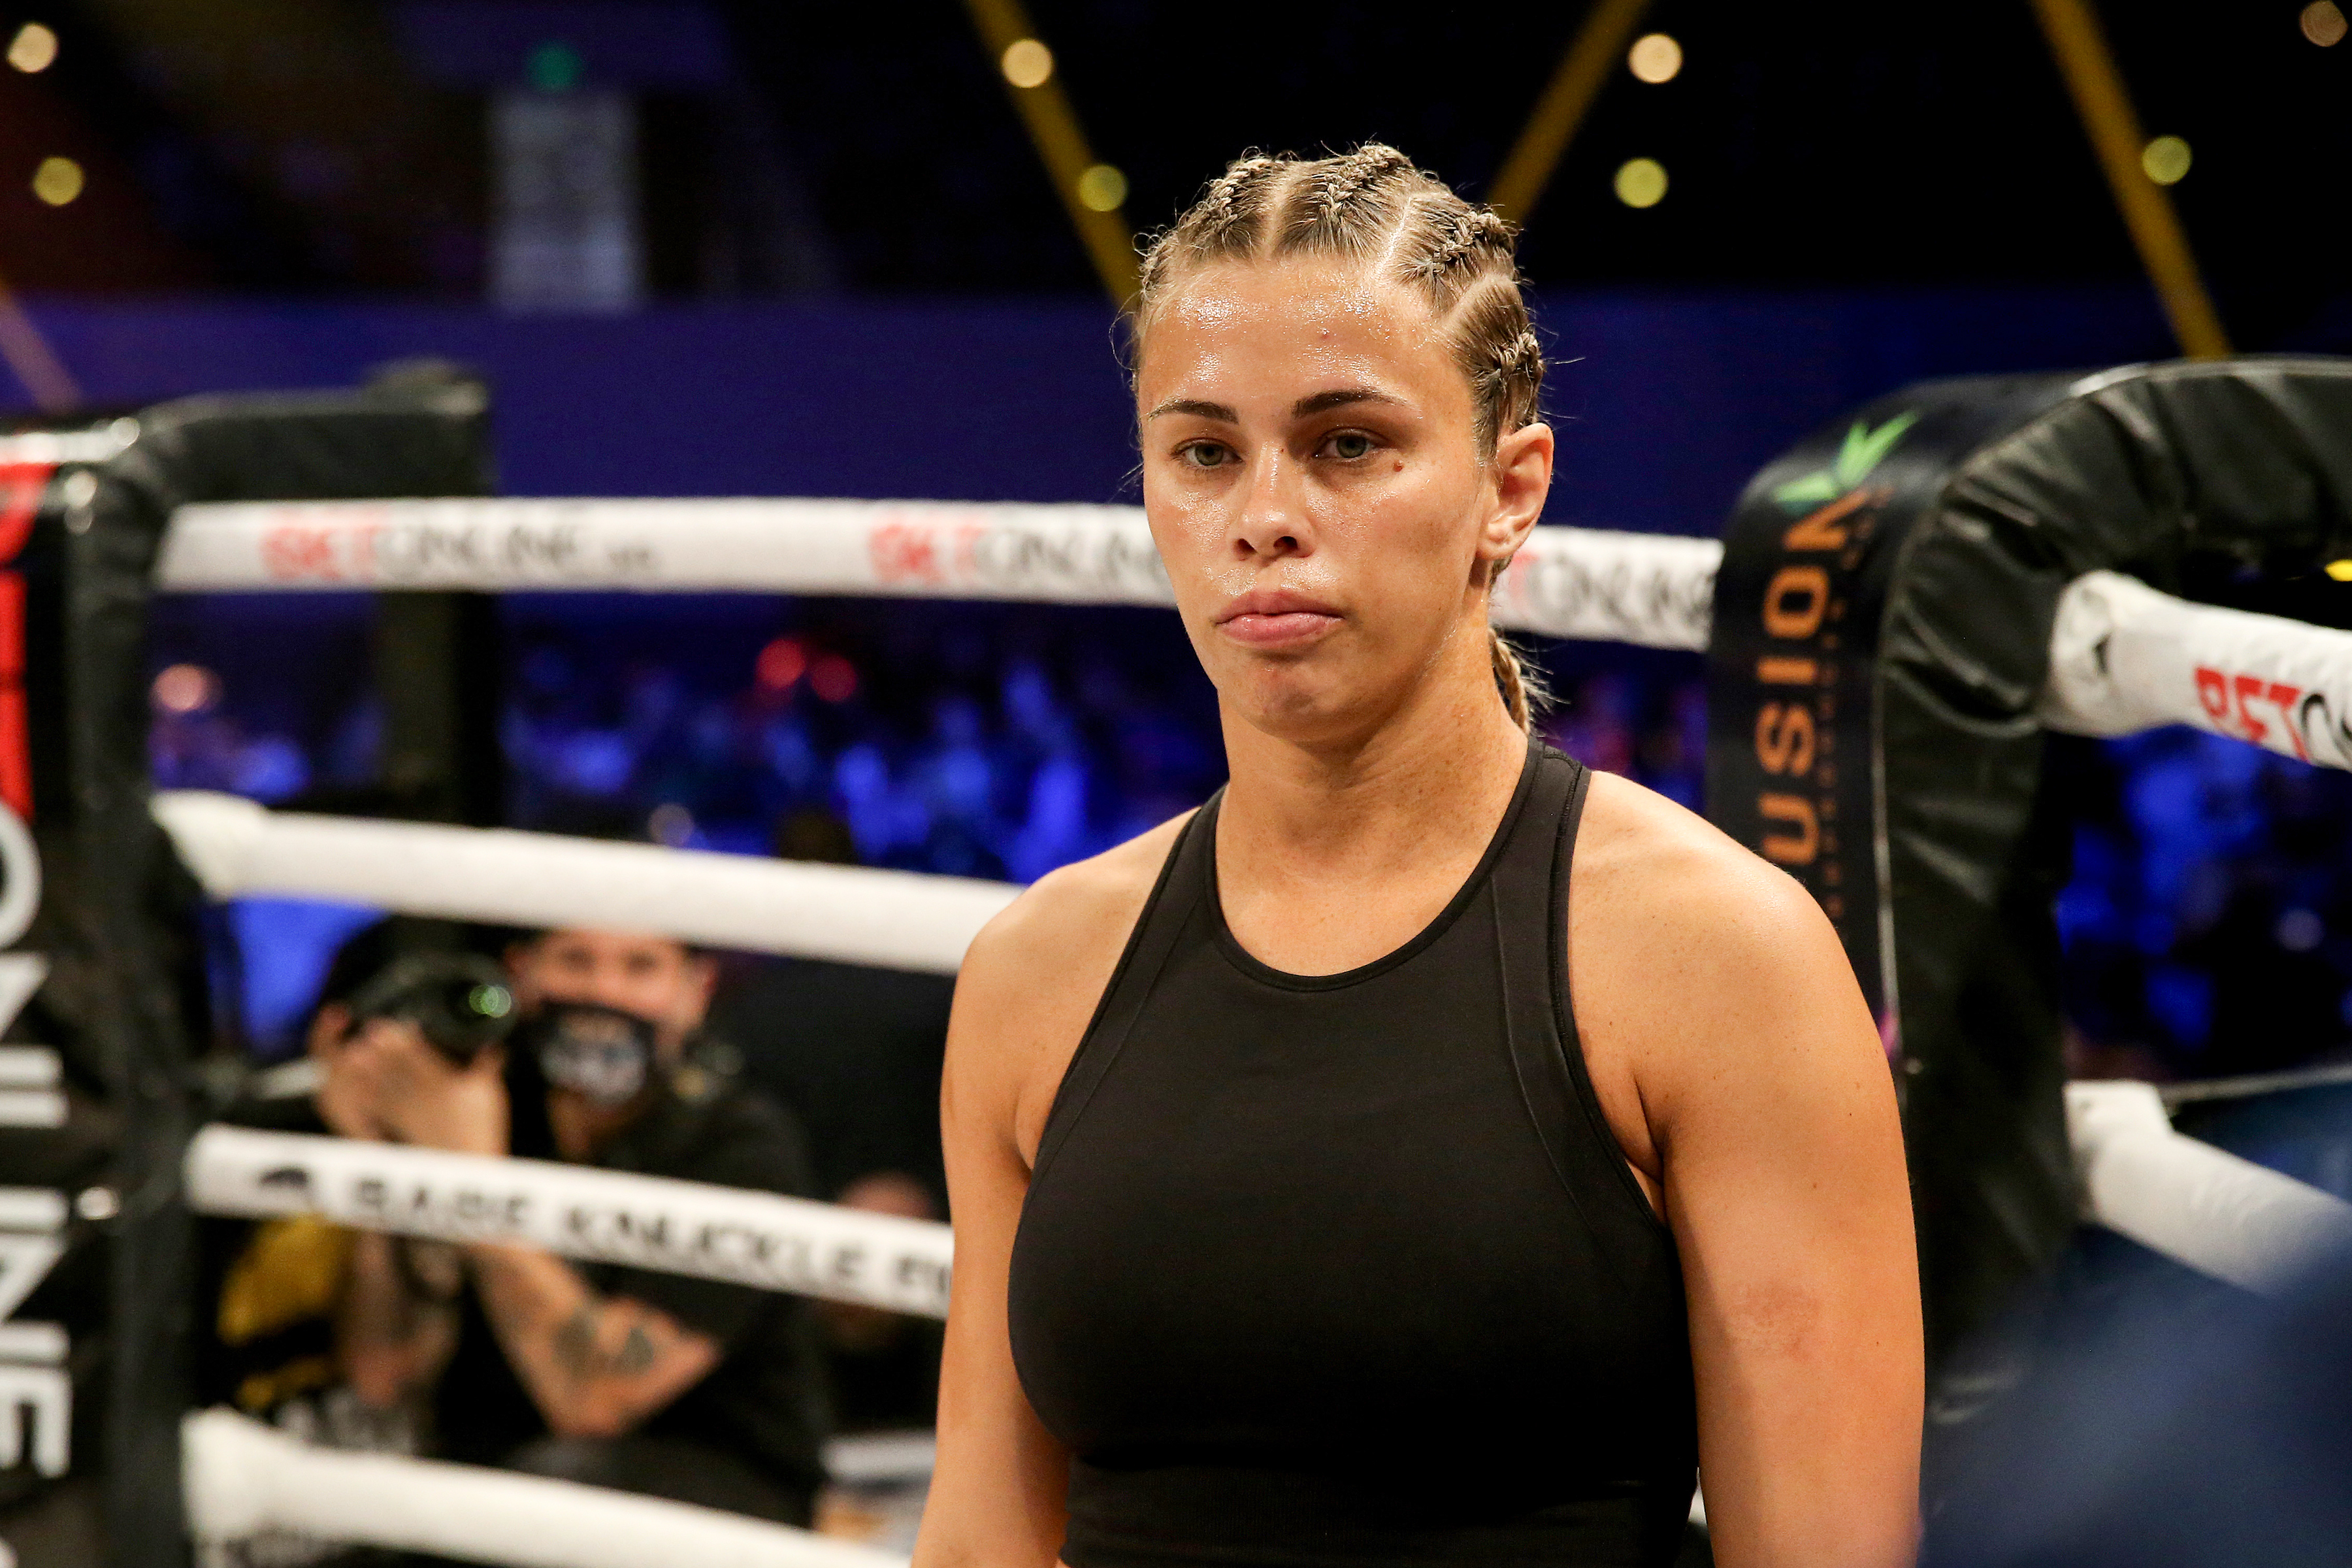 Paige VanZant competes in BKFC